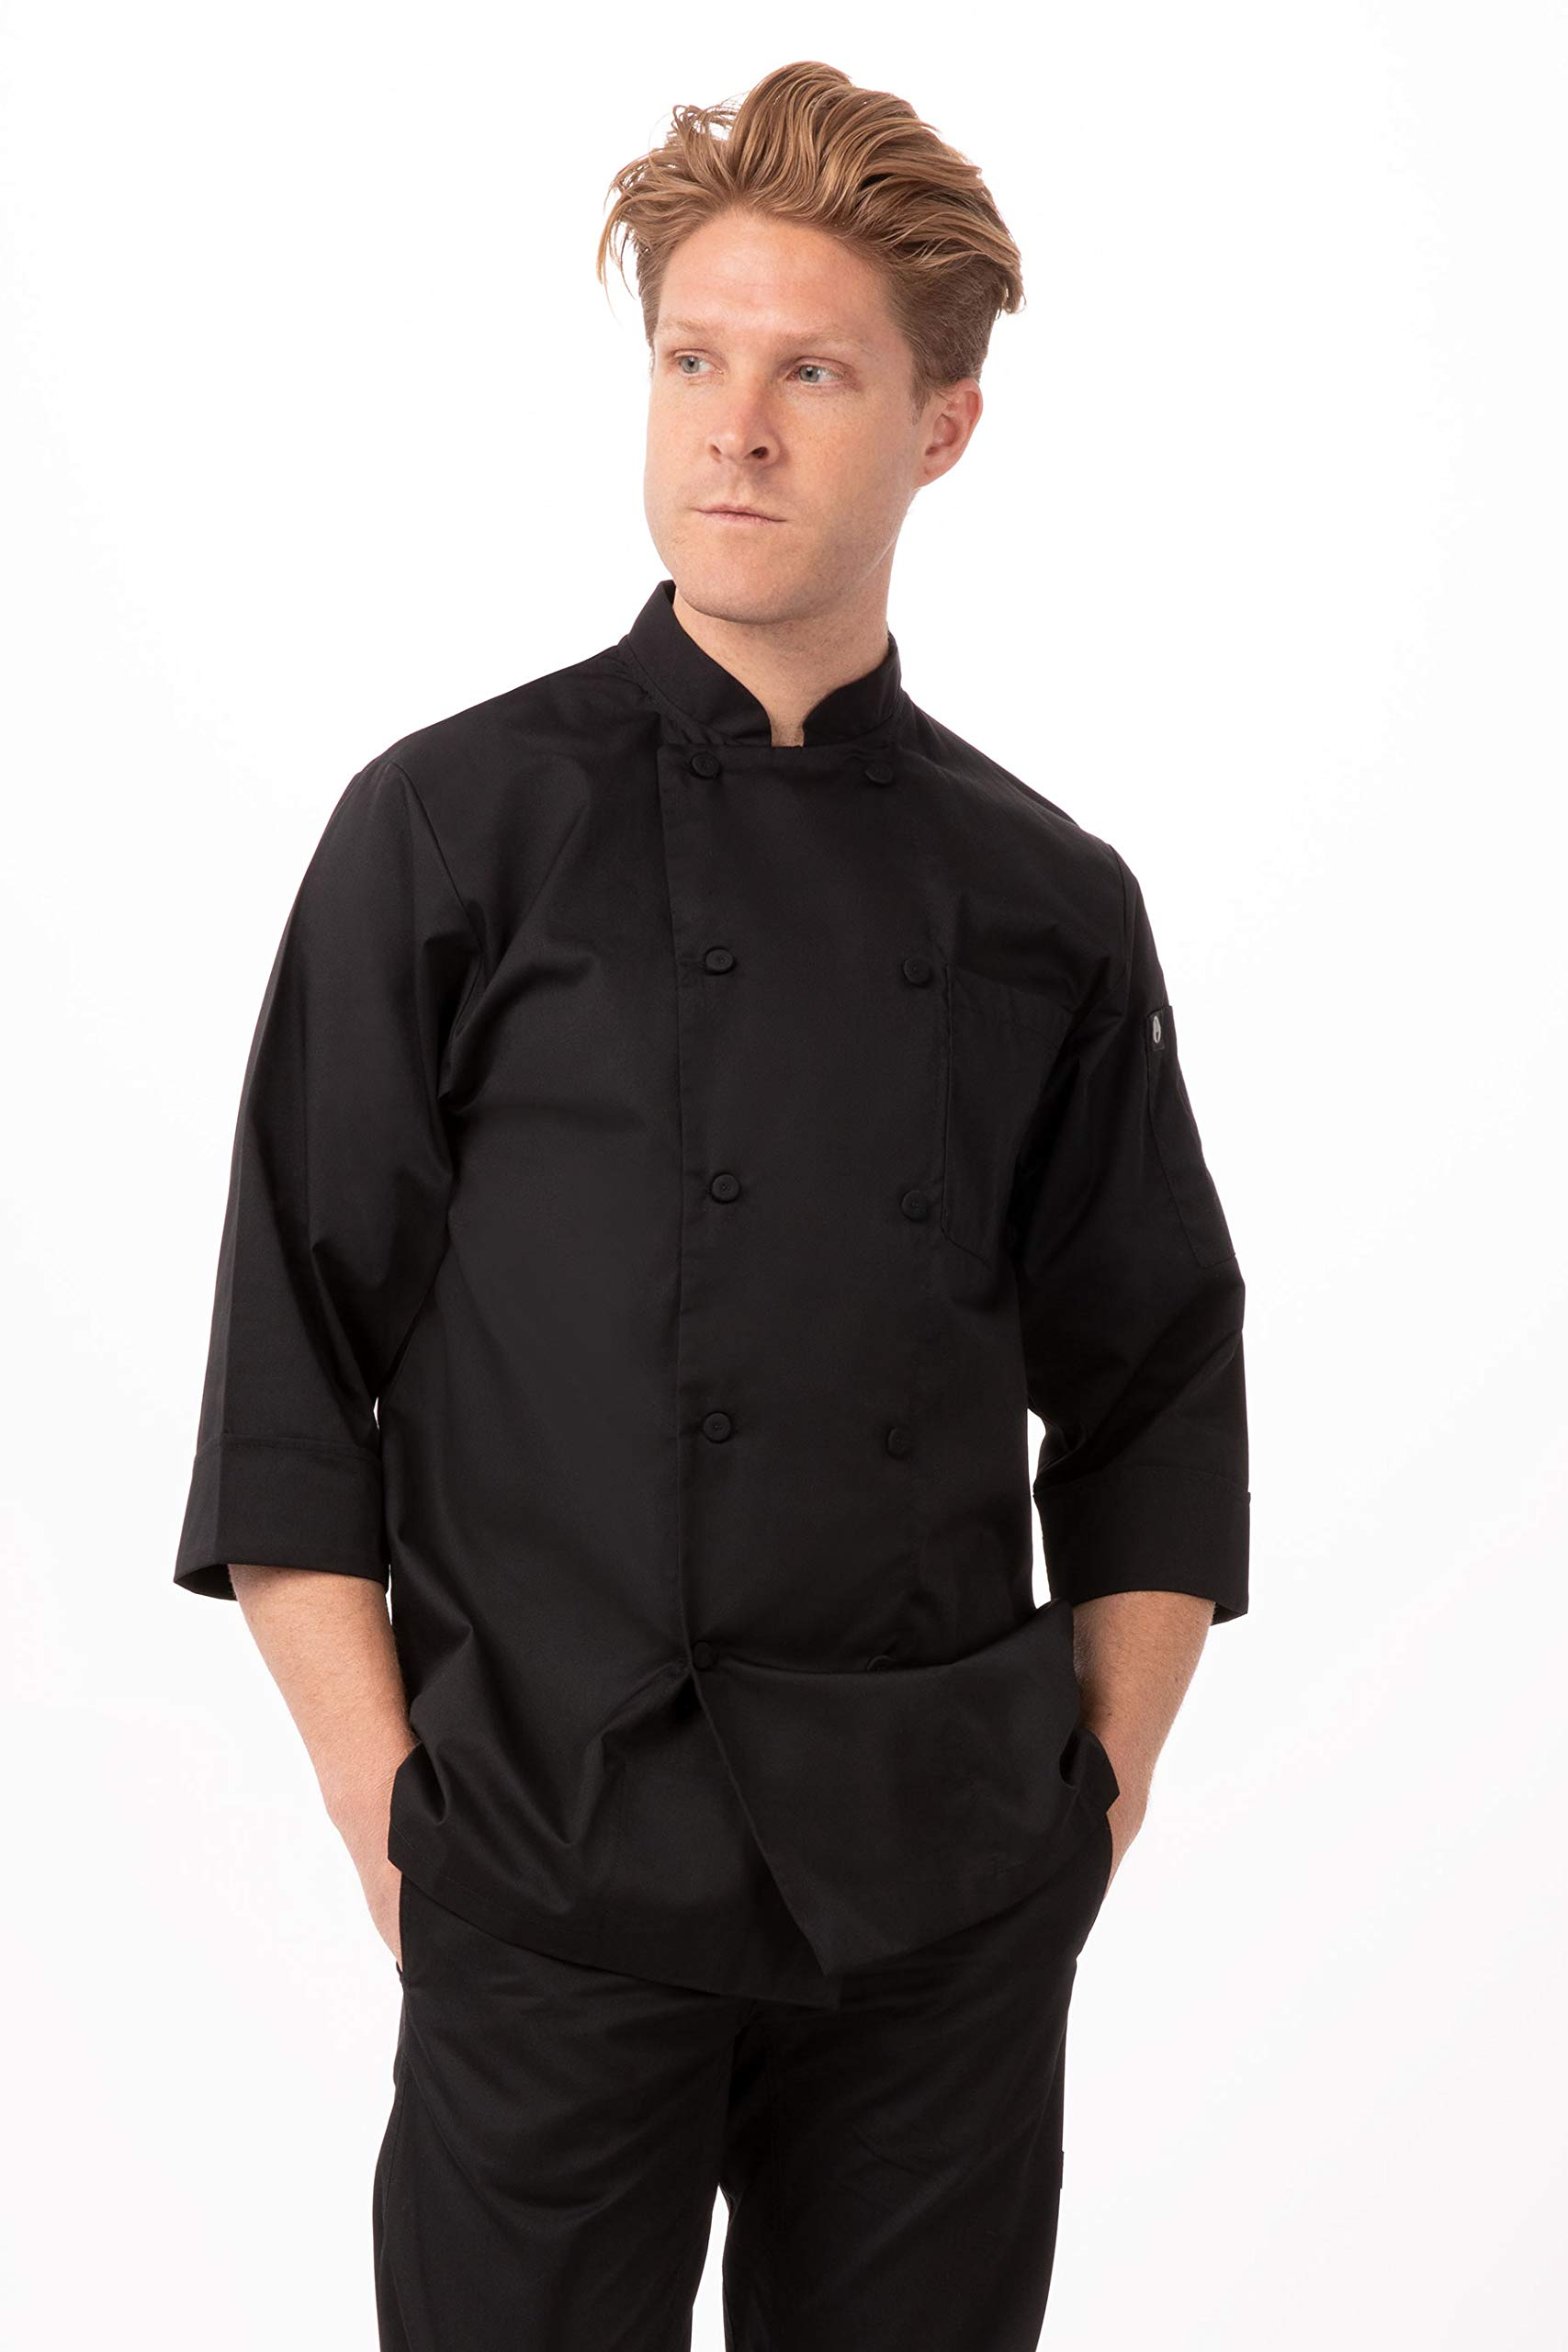 Chef Works Men's Morocco Chef Coat, Black, Medium by Chef Works